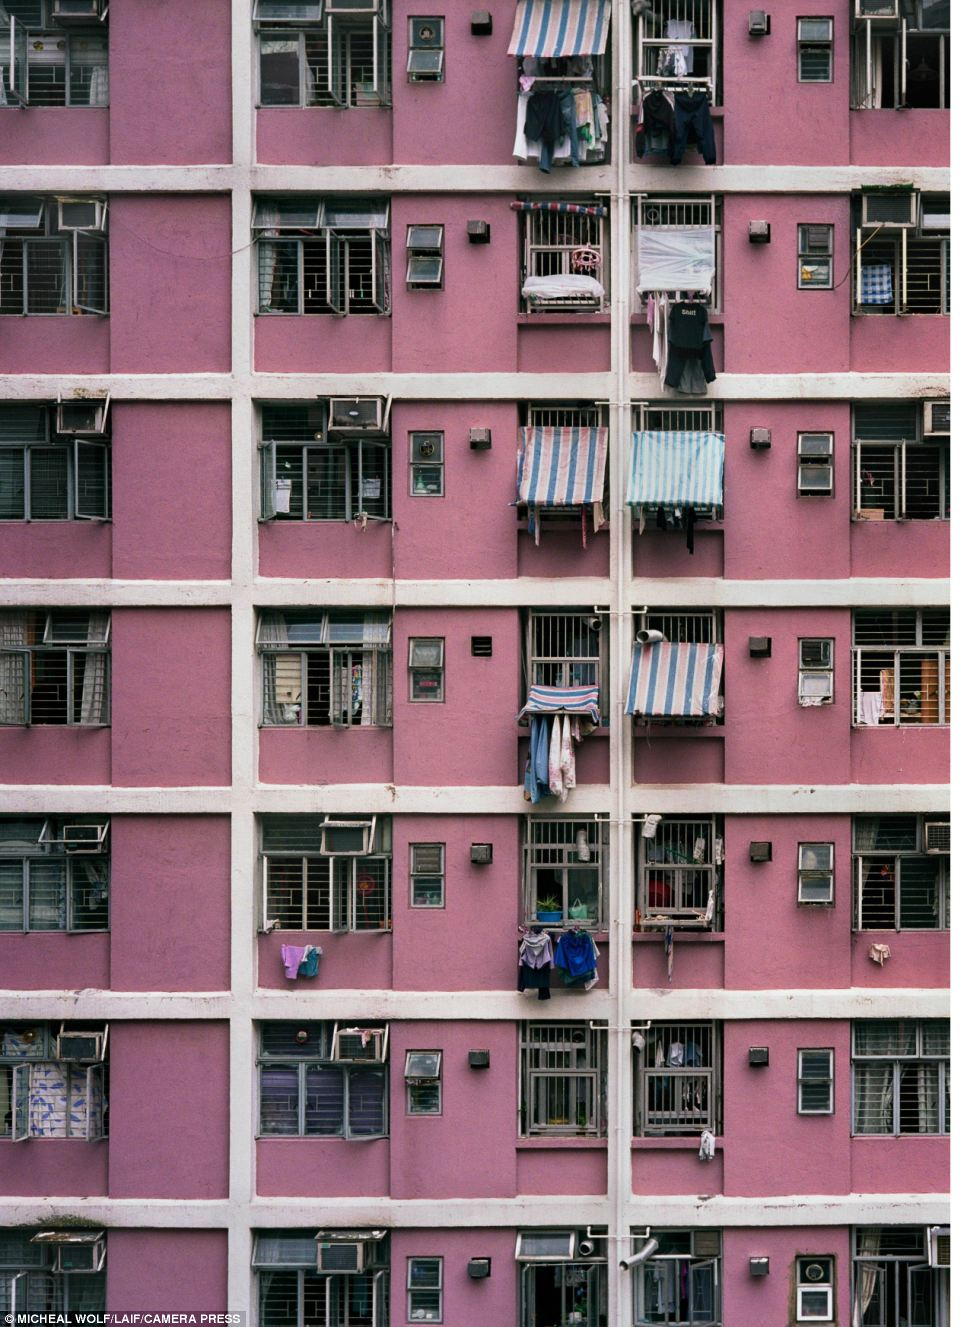 Hong Kong: Laundry hangs from the barred windows of this tower block, the walls of which are painted pastel pink